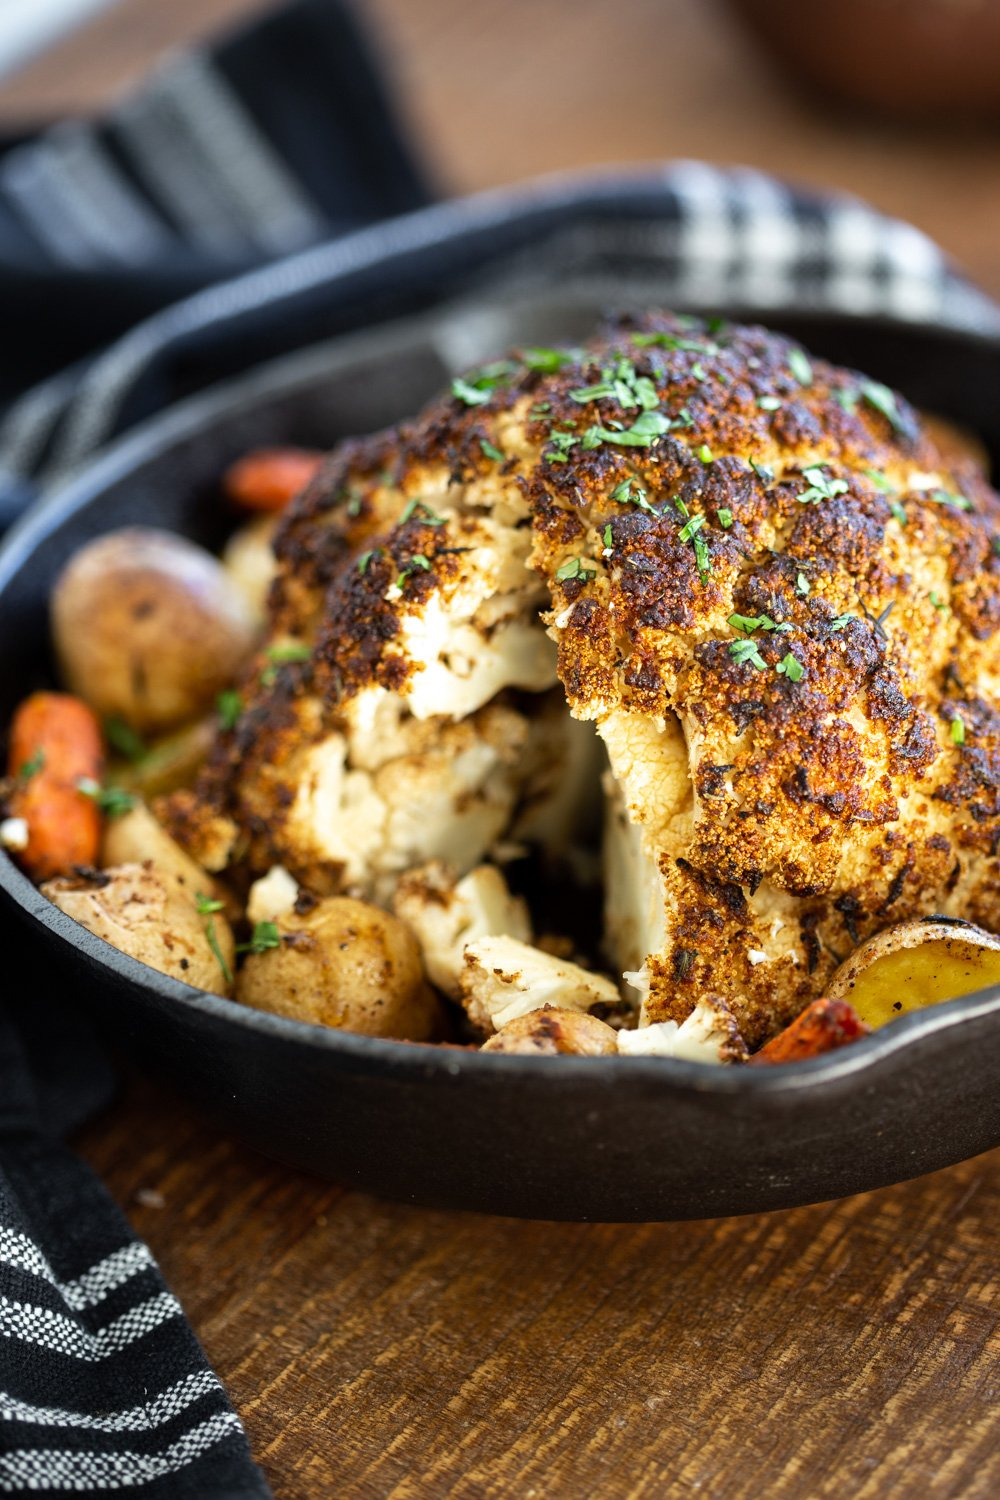 Whole Roasted Cauliflower. This Baked Whole Roasted Cauliflower is marinated in flavorful of herbs and spices and baked to perfection to make a fabulous Holiday table option. #VeganRicha #holiday #Vegan #Glutenfree #Nutfree #recipe. Can be #soyfree